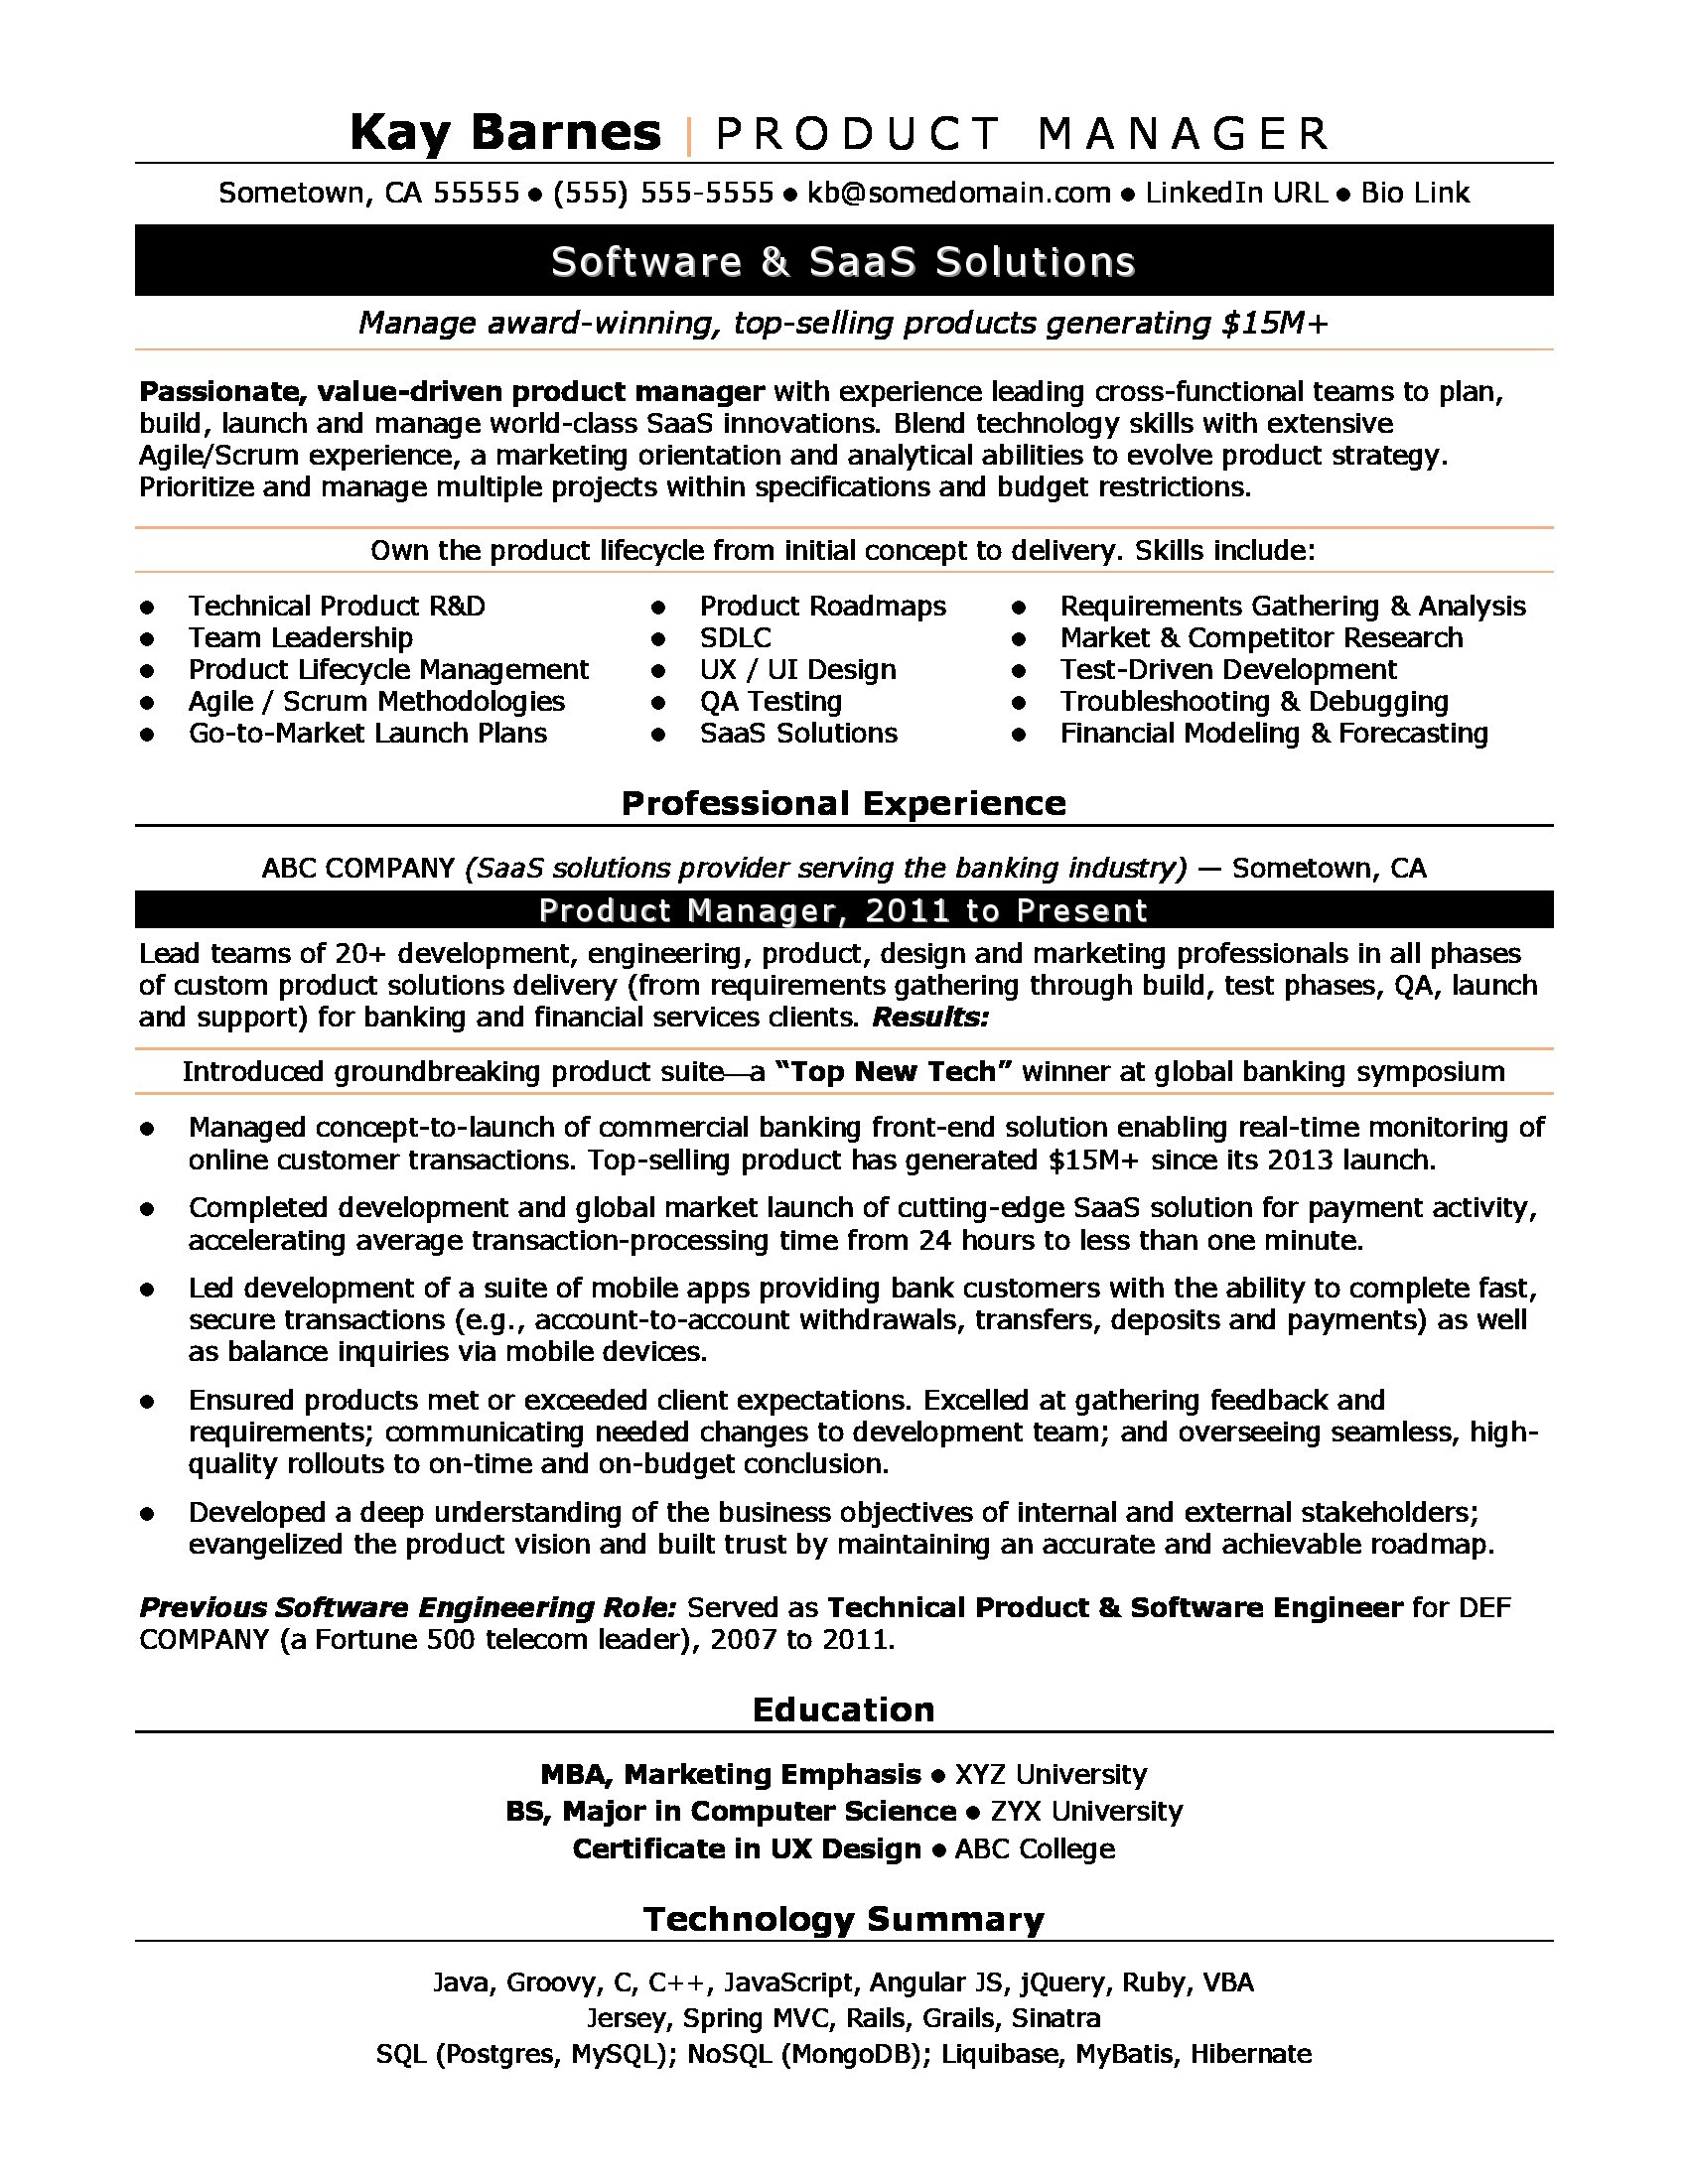 Product Manager Resume Sample  Technical Resume Tips